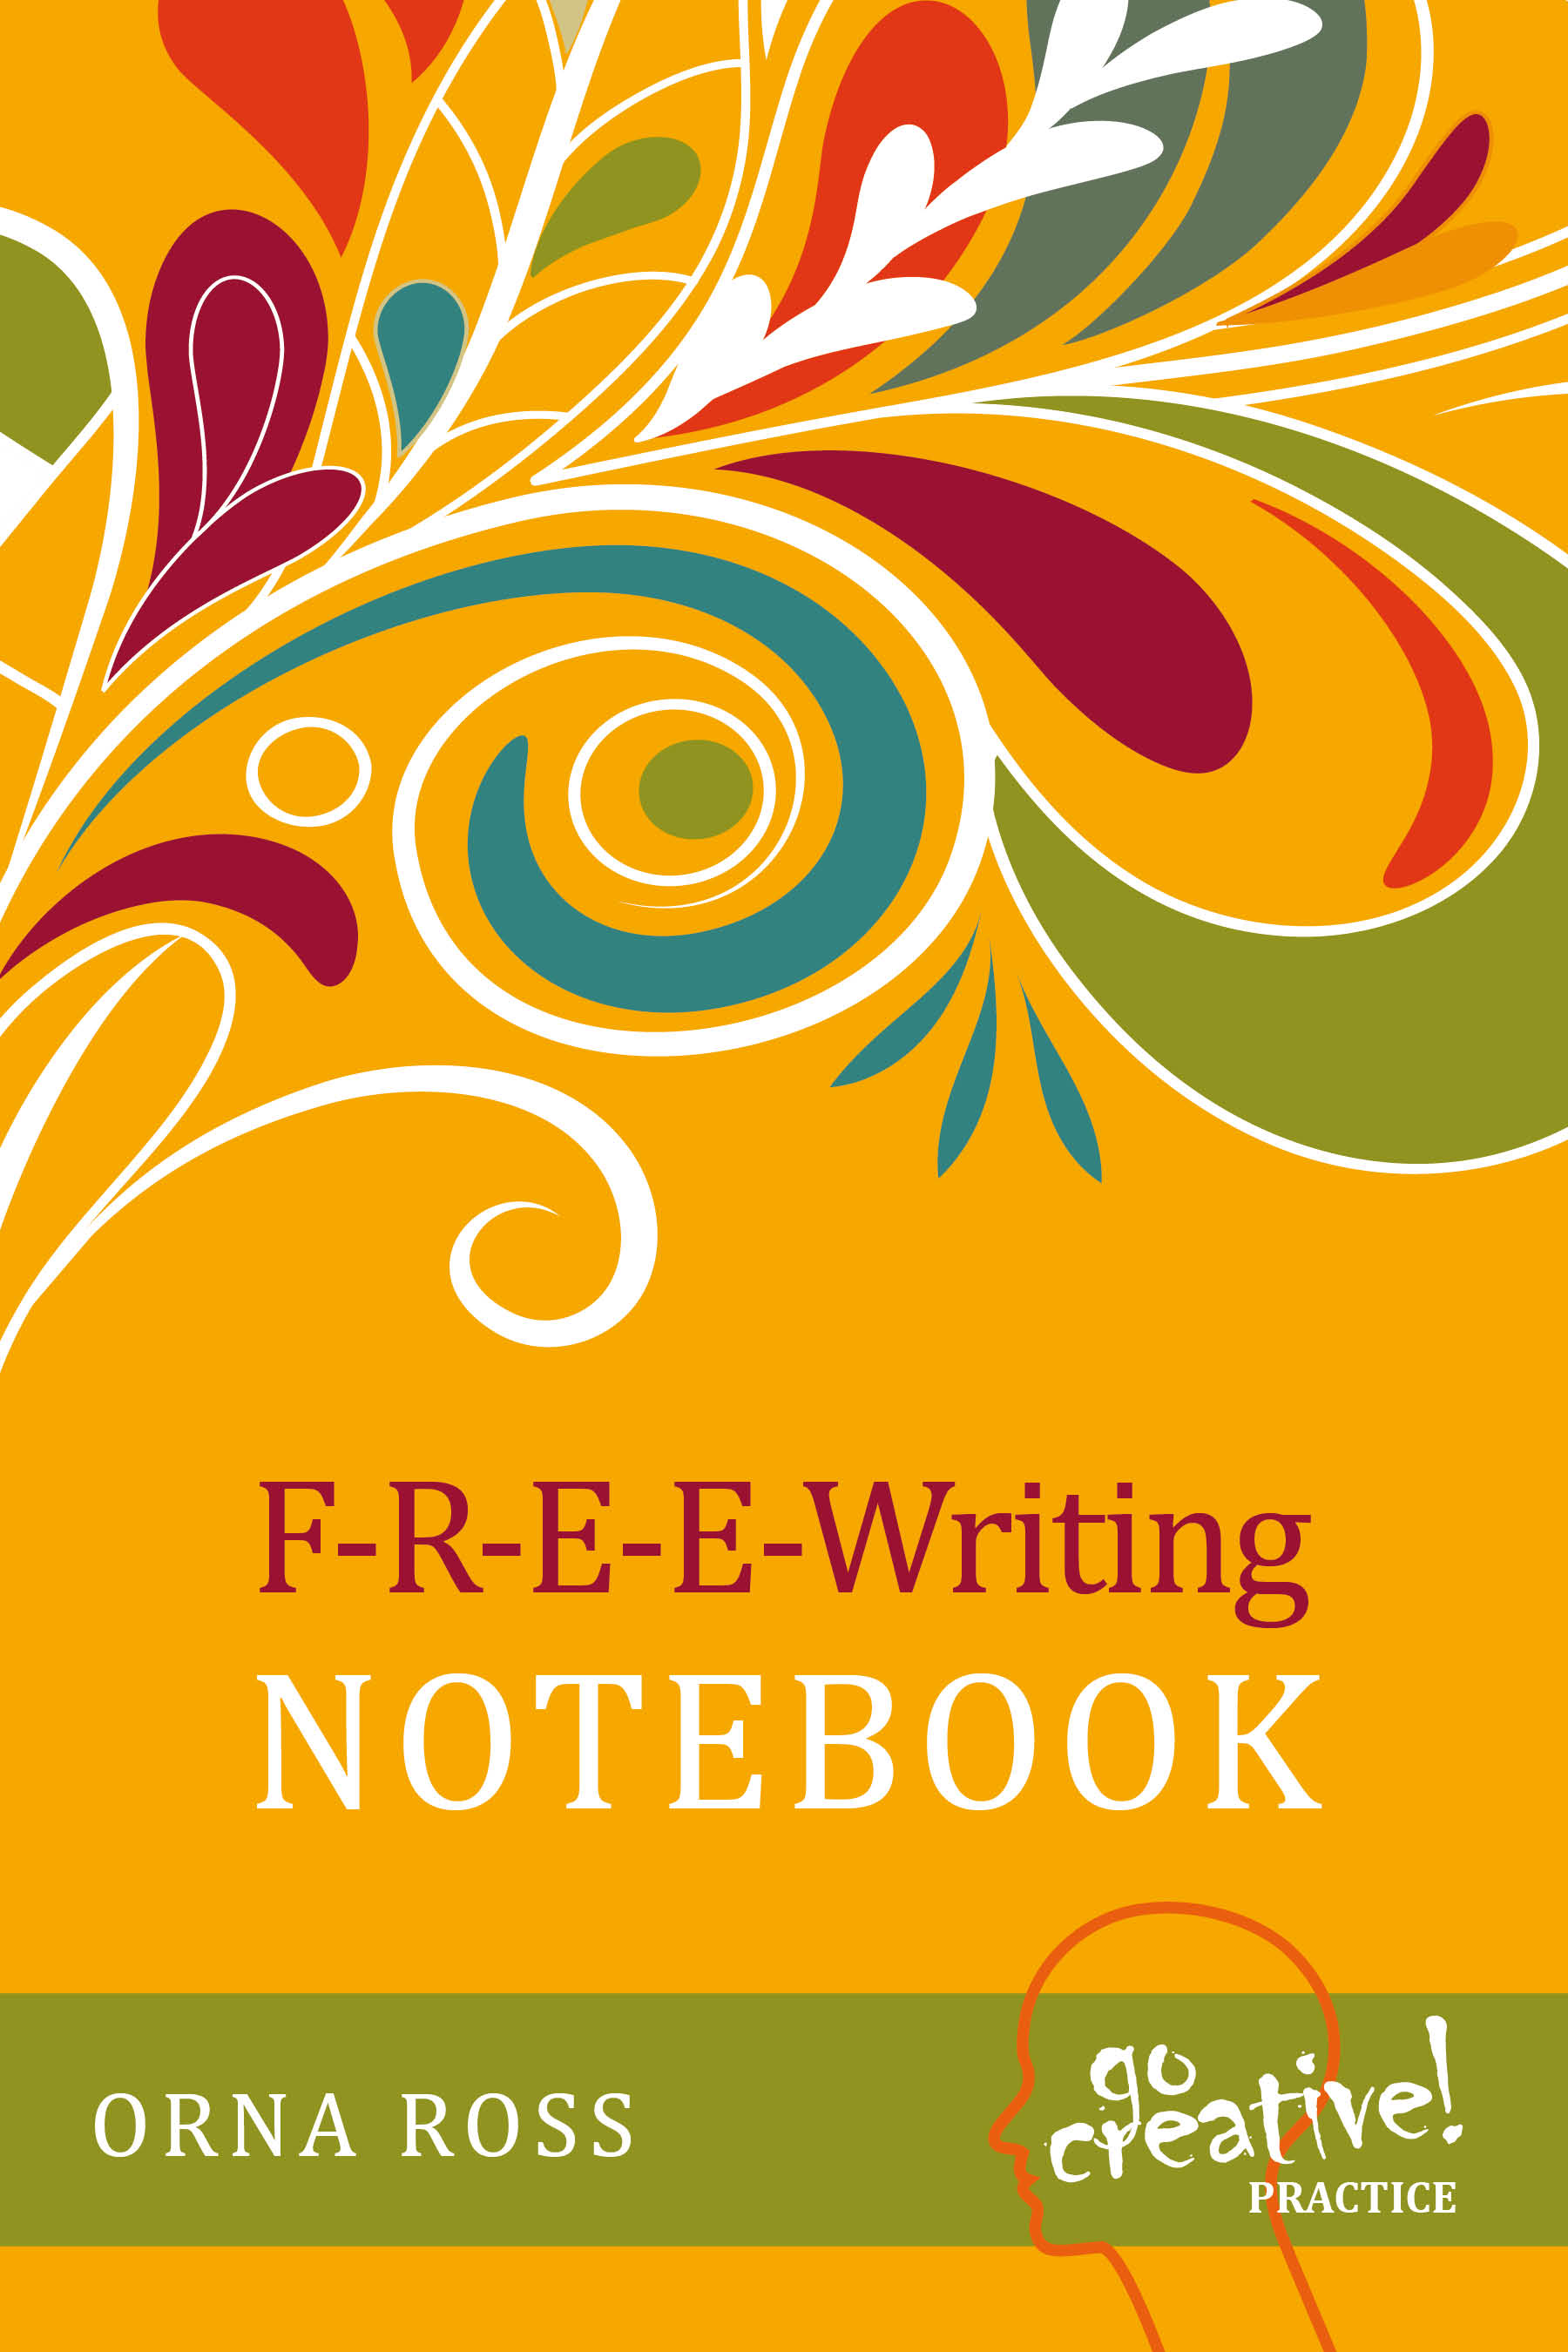 How To F-r-e-e-Write: Part 1